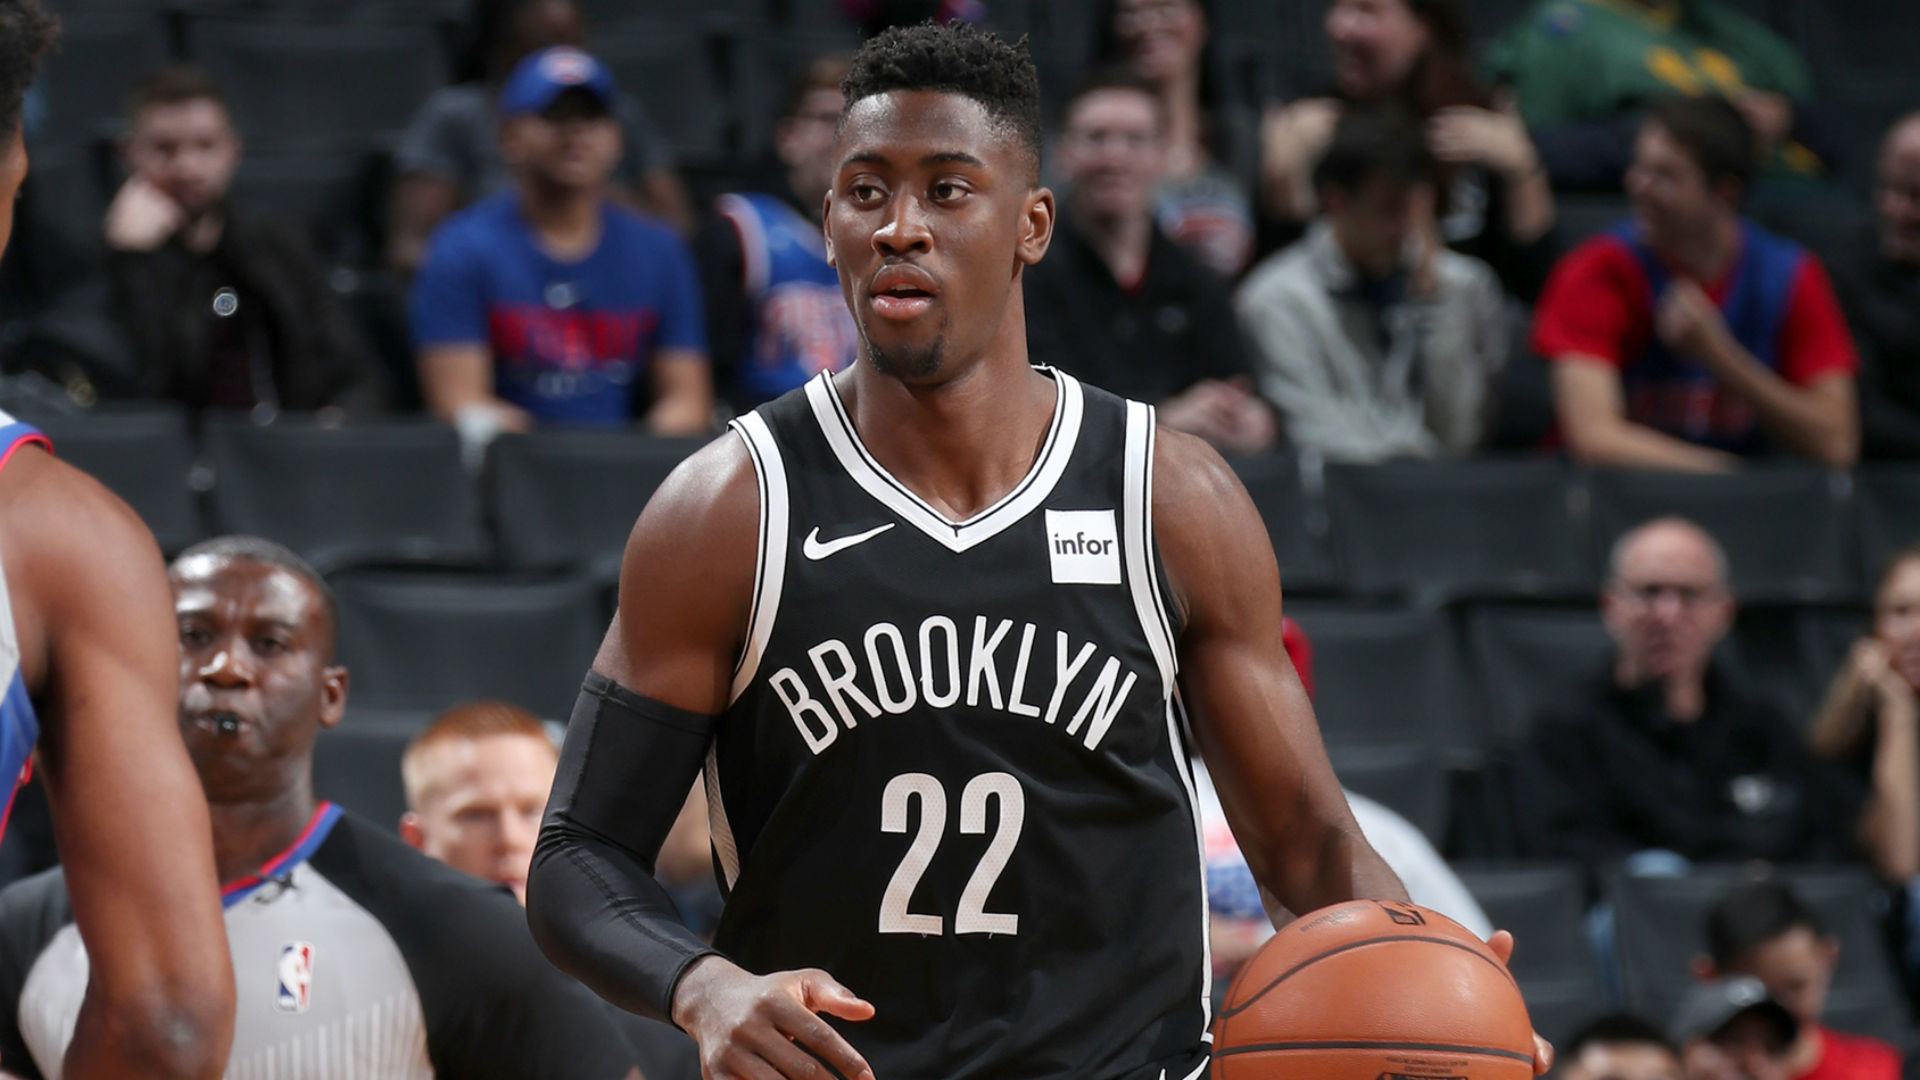 Brooklyn Nets guard Caris LeVert diagnosed with dislocated right foot, expected to return this season